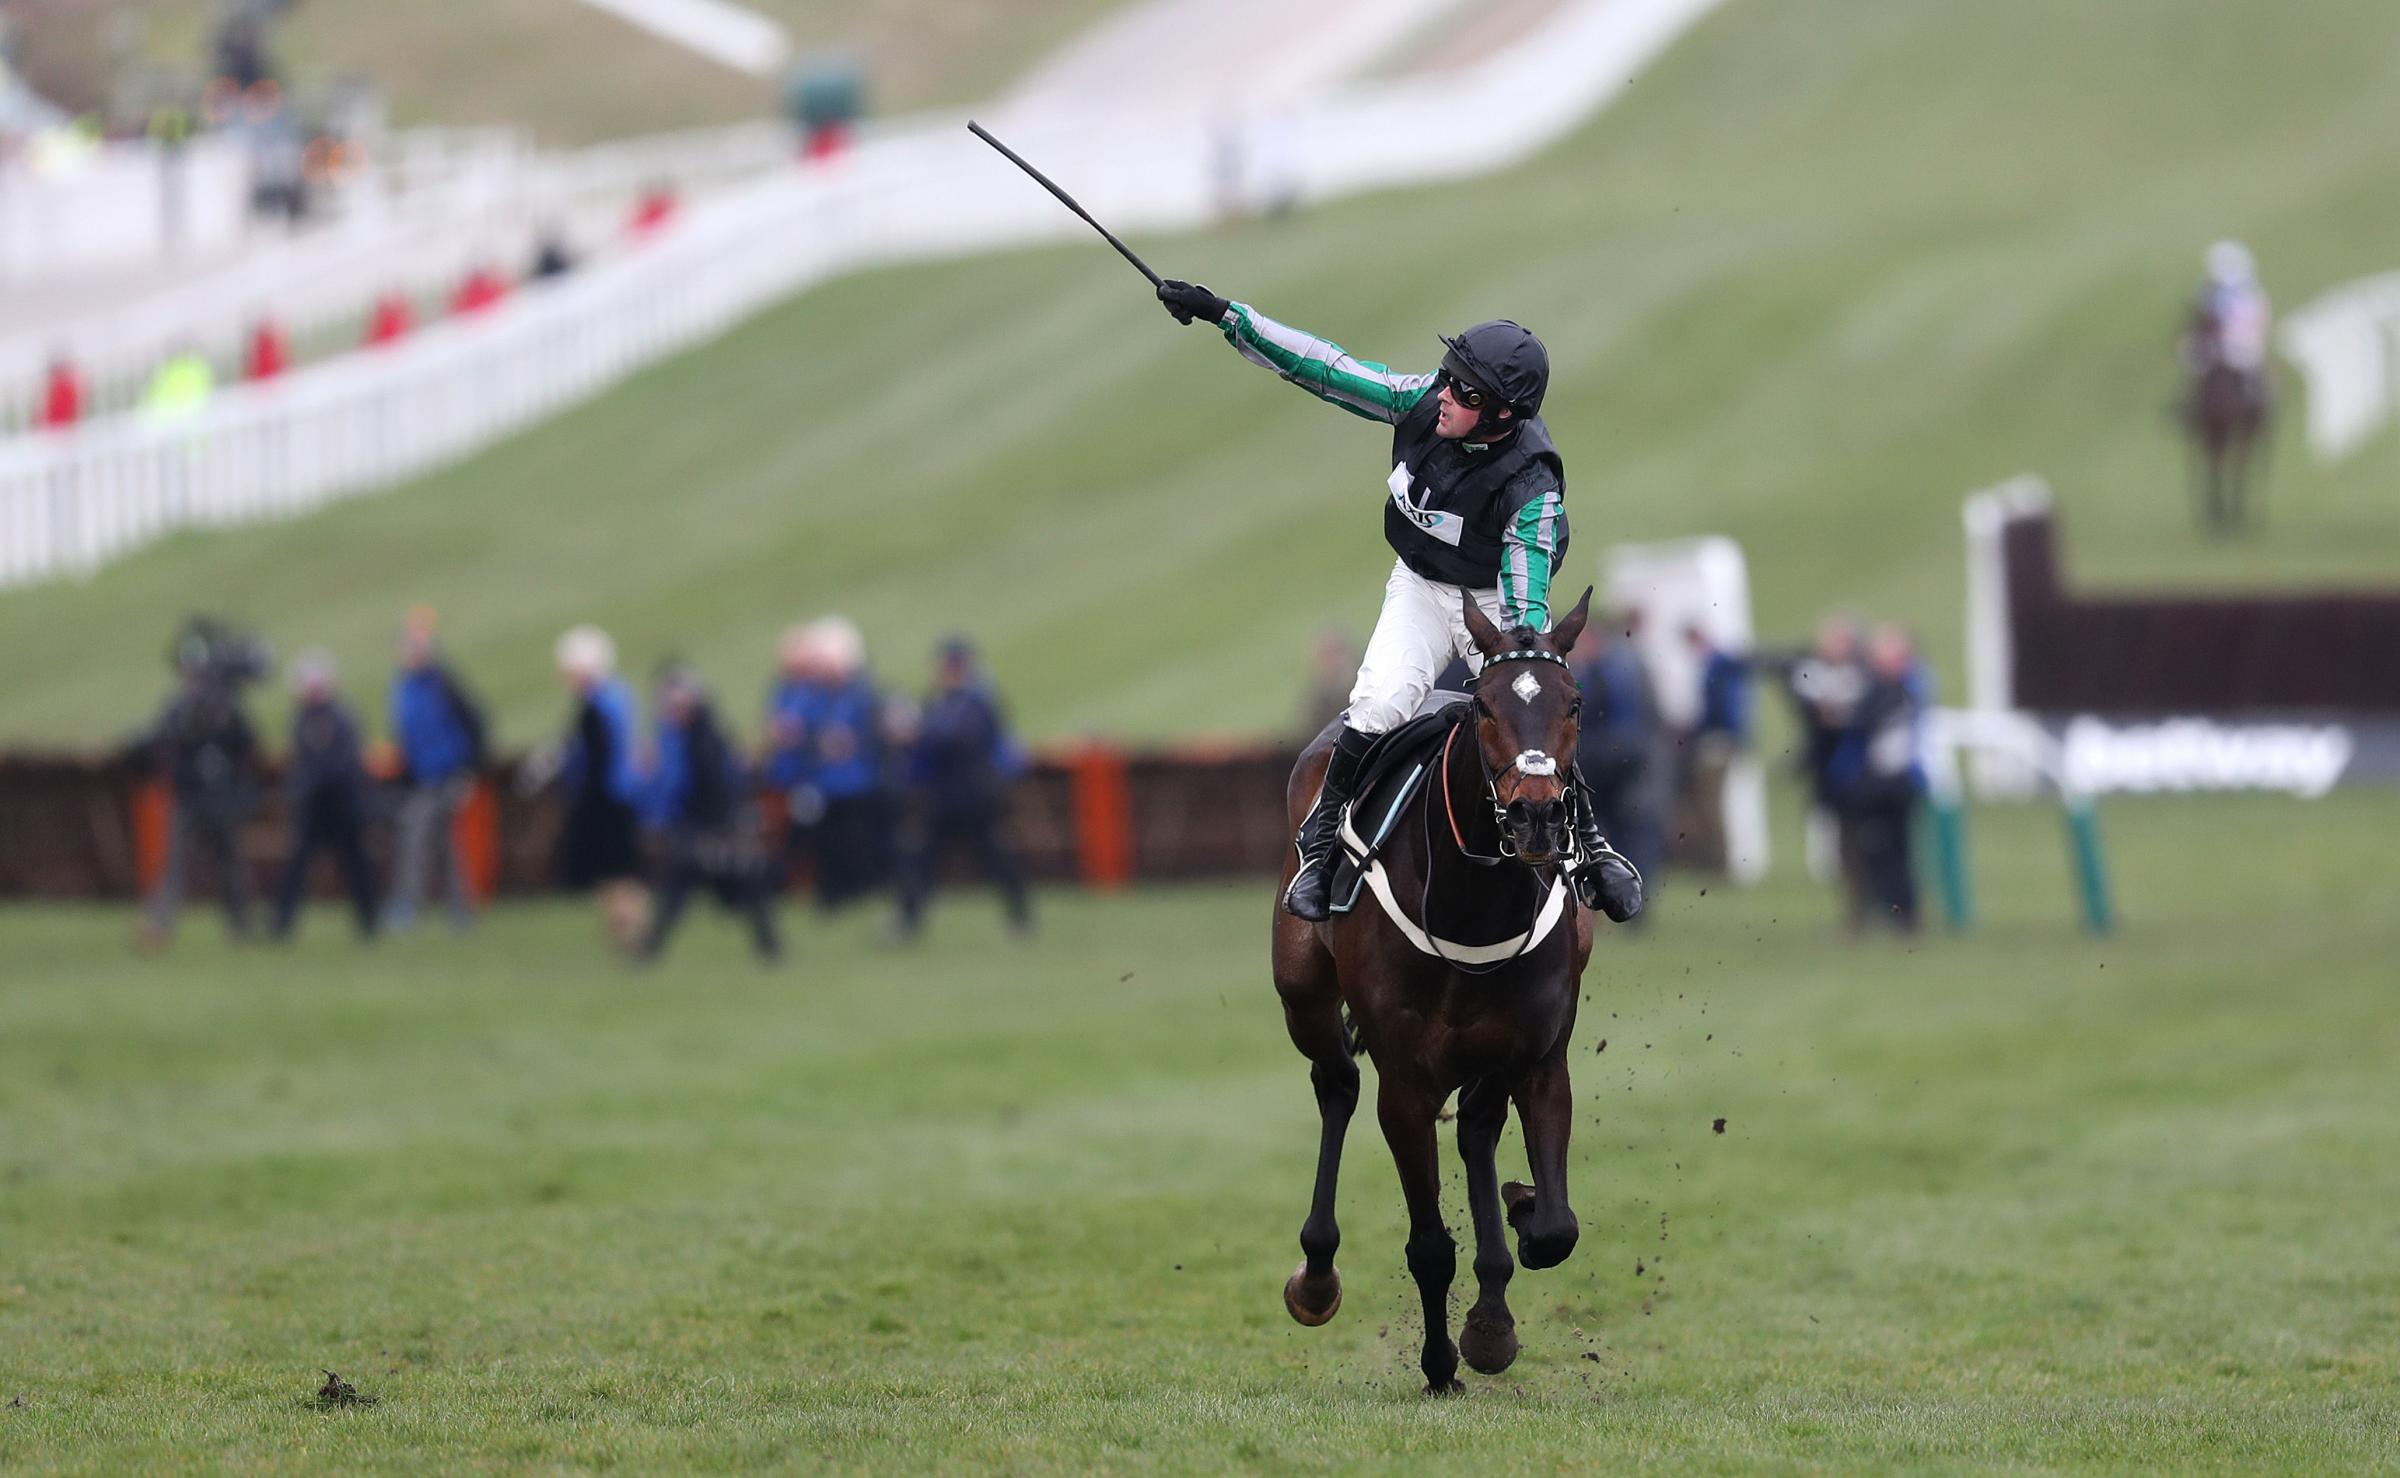 Altior and jockey Nico de Boinville after winning the Betway Queen Mother Champion Chase during Ladies Day of the 2018 Cheltenham Festival at Cheltenham Racecourse. PRESS ASSOCIATION Photo. Picture date: Wednesday March 14, 2018. See PA story RACING Chelt